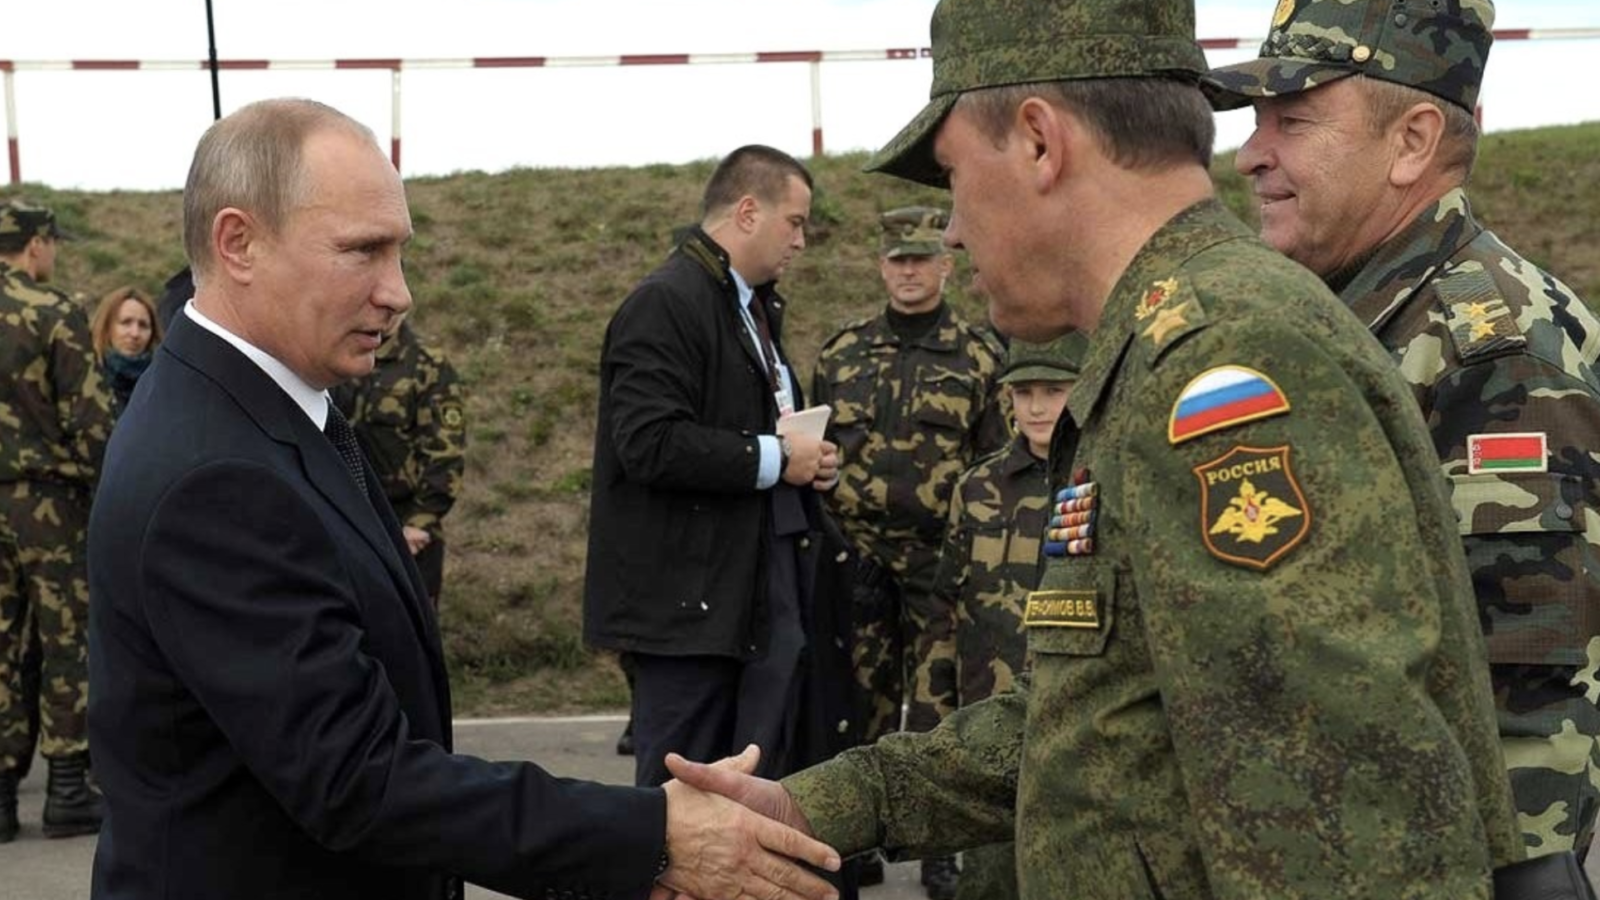 Vladimir Putin shakes the hand of a member of the Russian military.